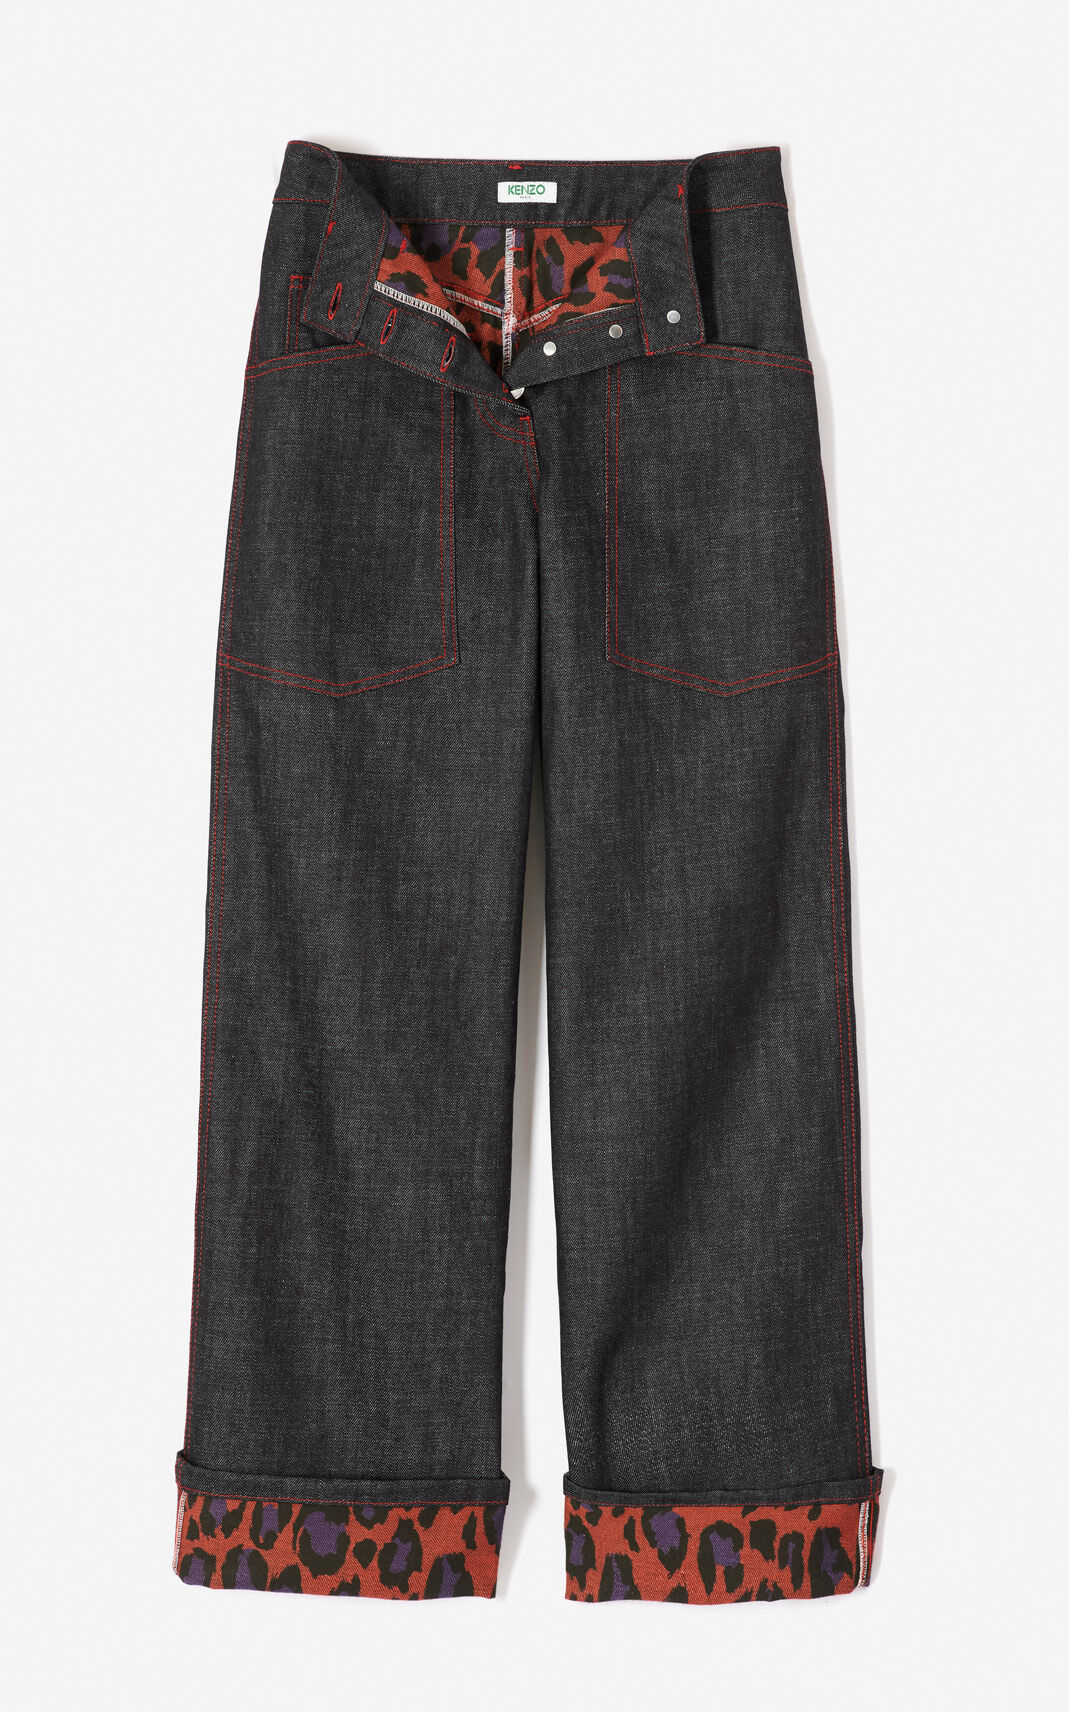 MEDIUM RED 'Leopard' jeans with cuffs for women KENZO